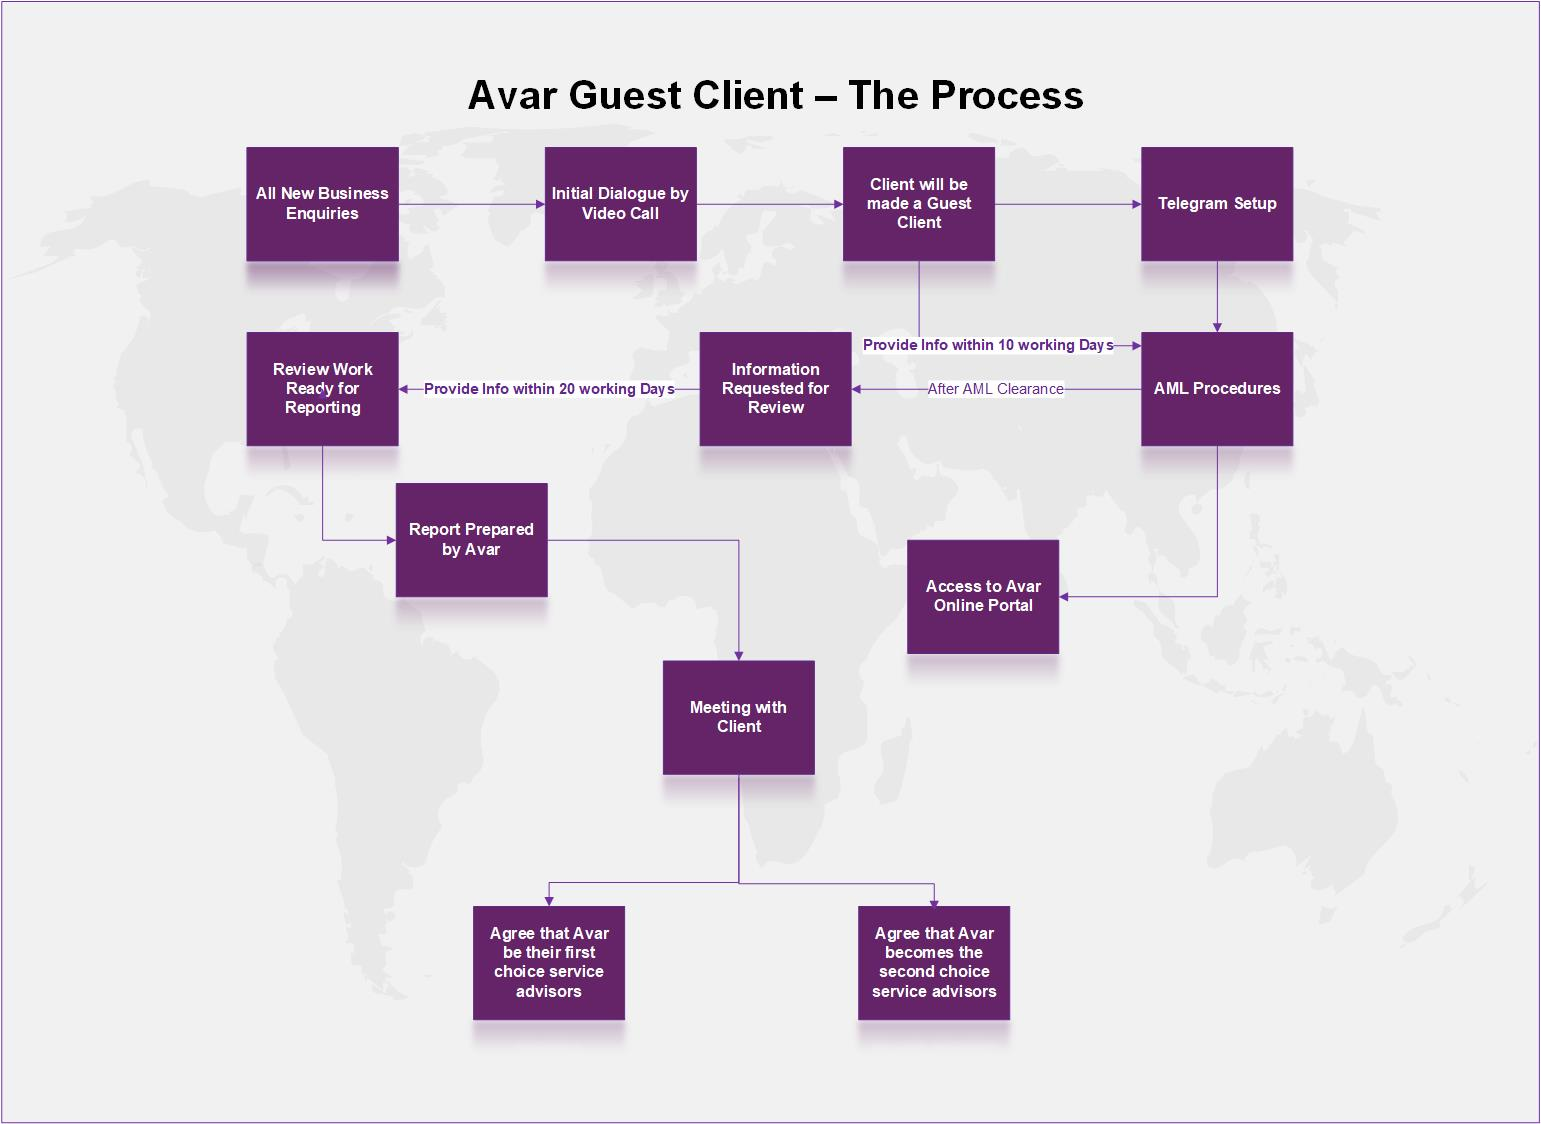 Avar Guest Clients - The Process